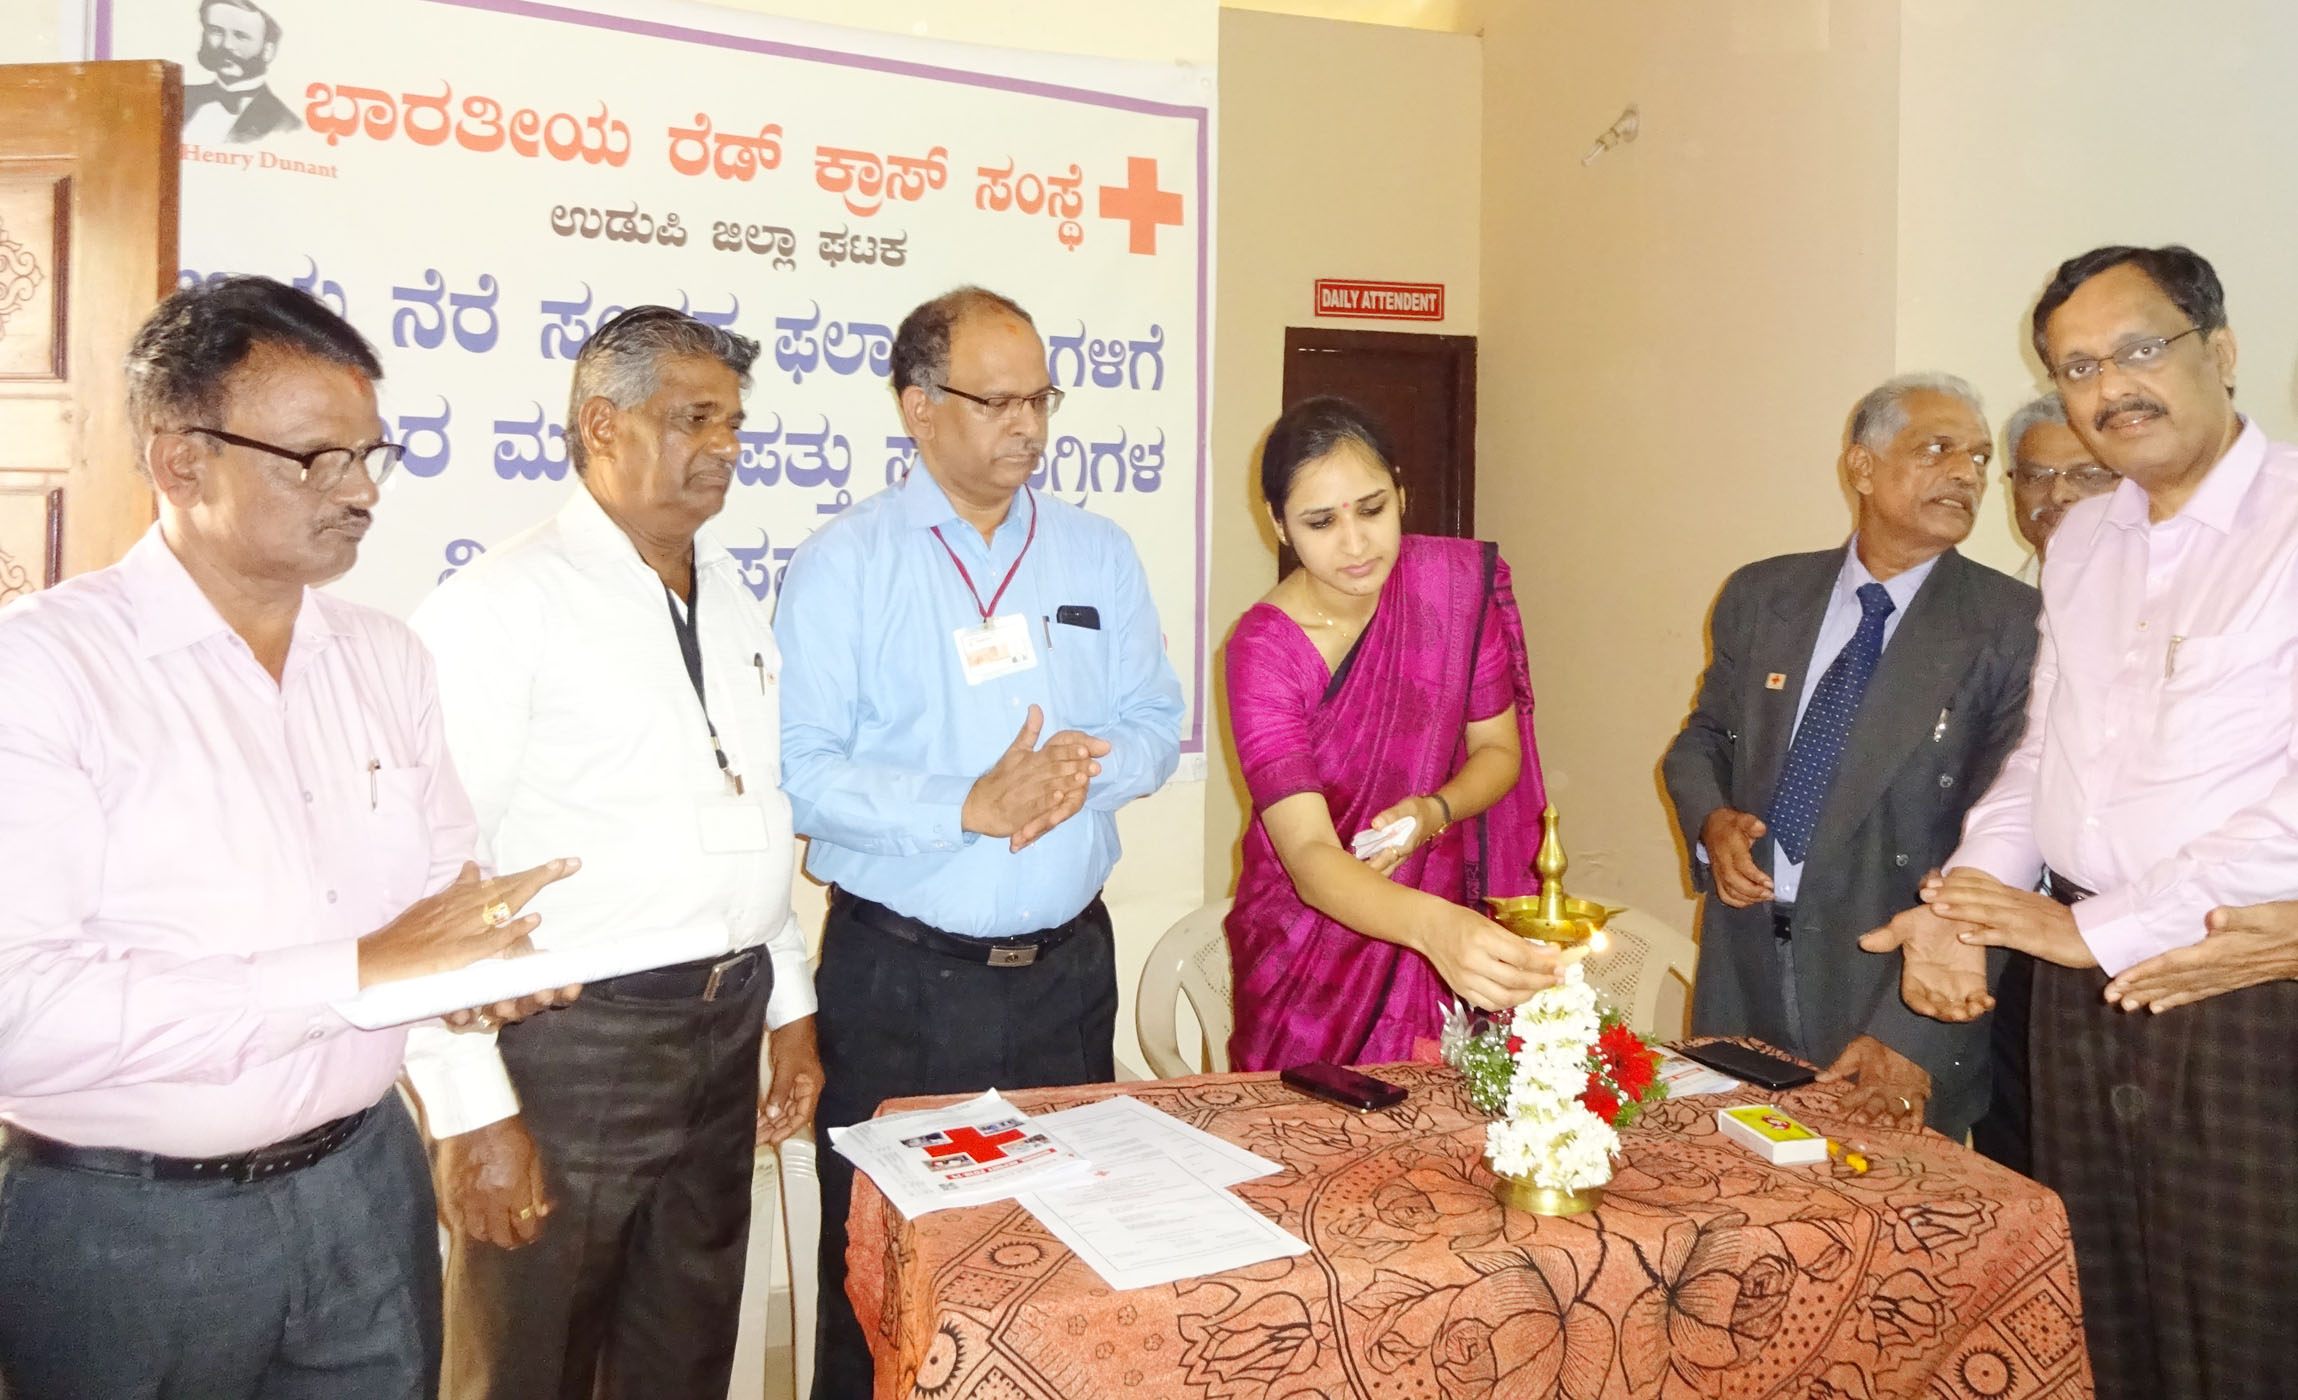 Give information about the social work of the Red Cross - Preety Gehlot, CEO of Udupi Zilla Panchayat